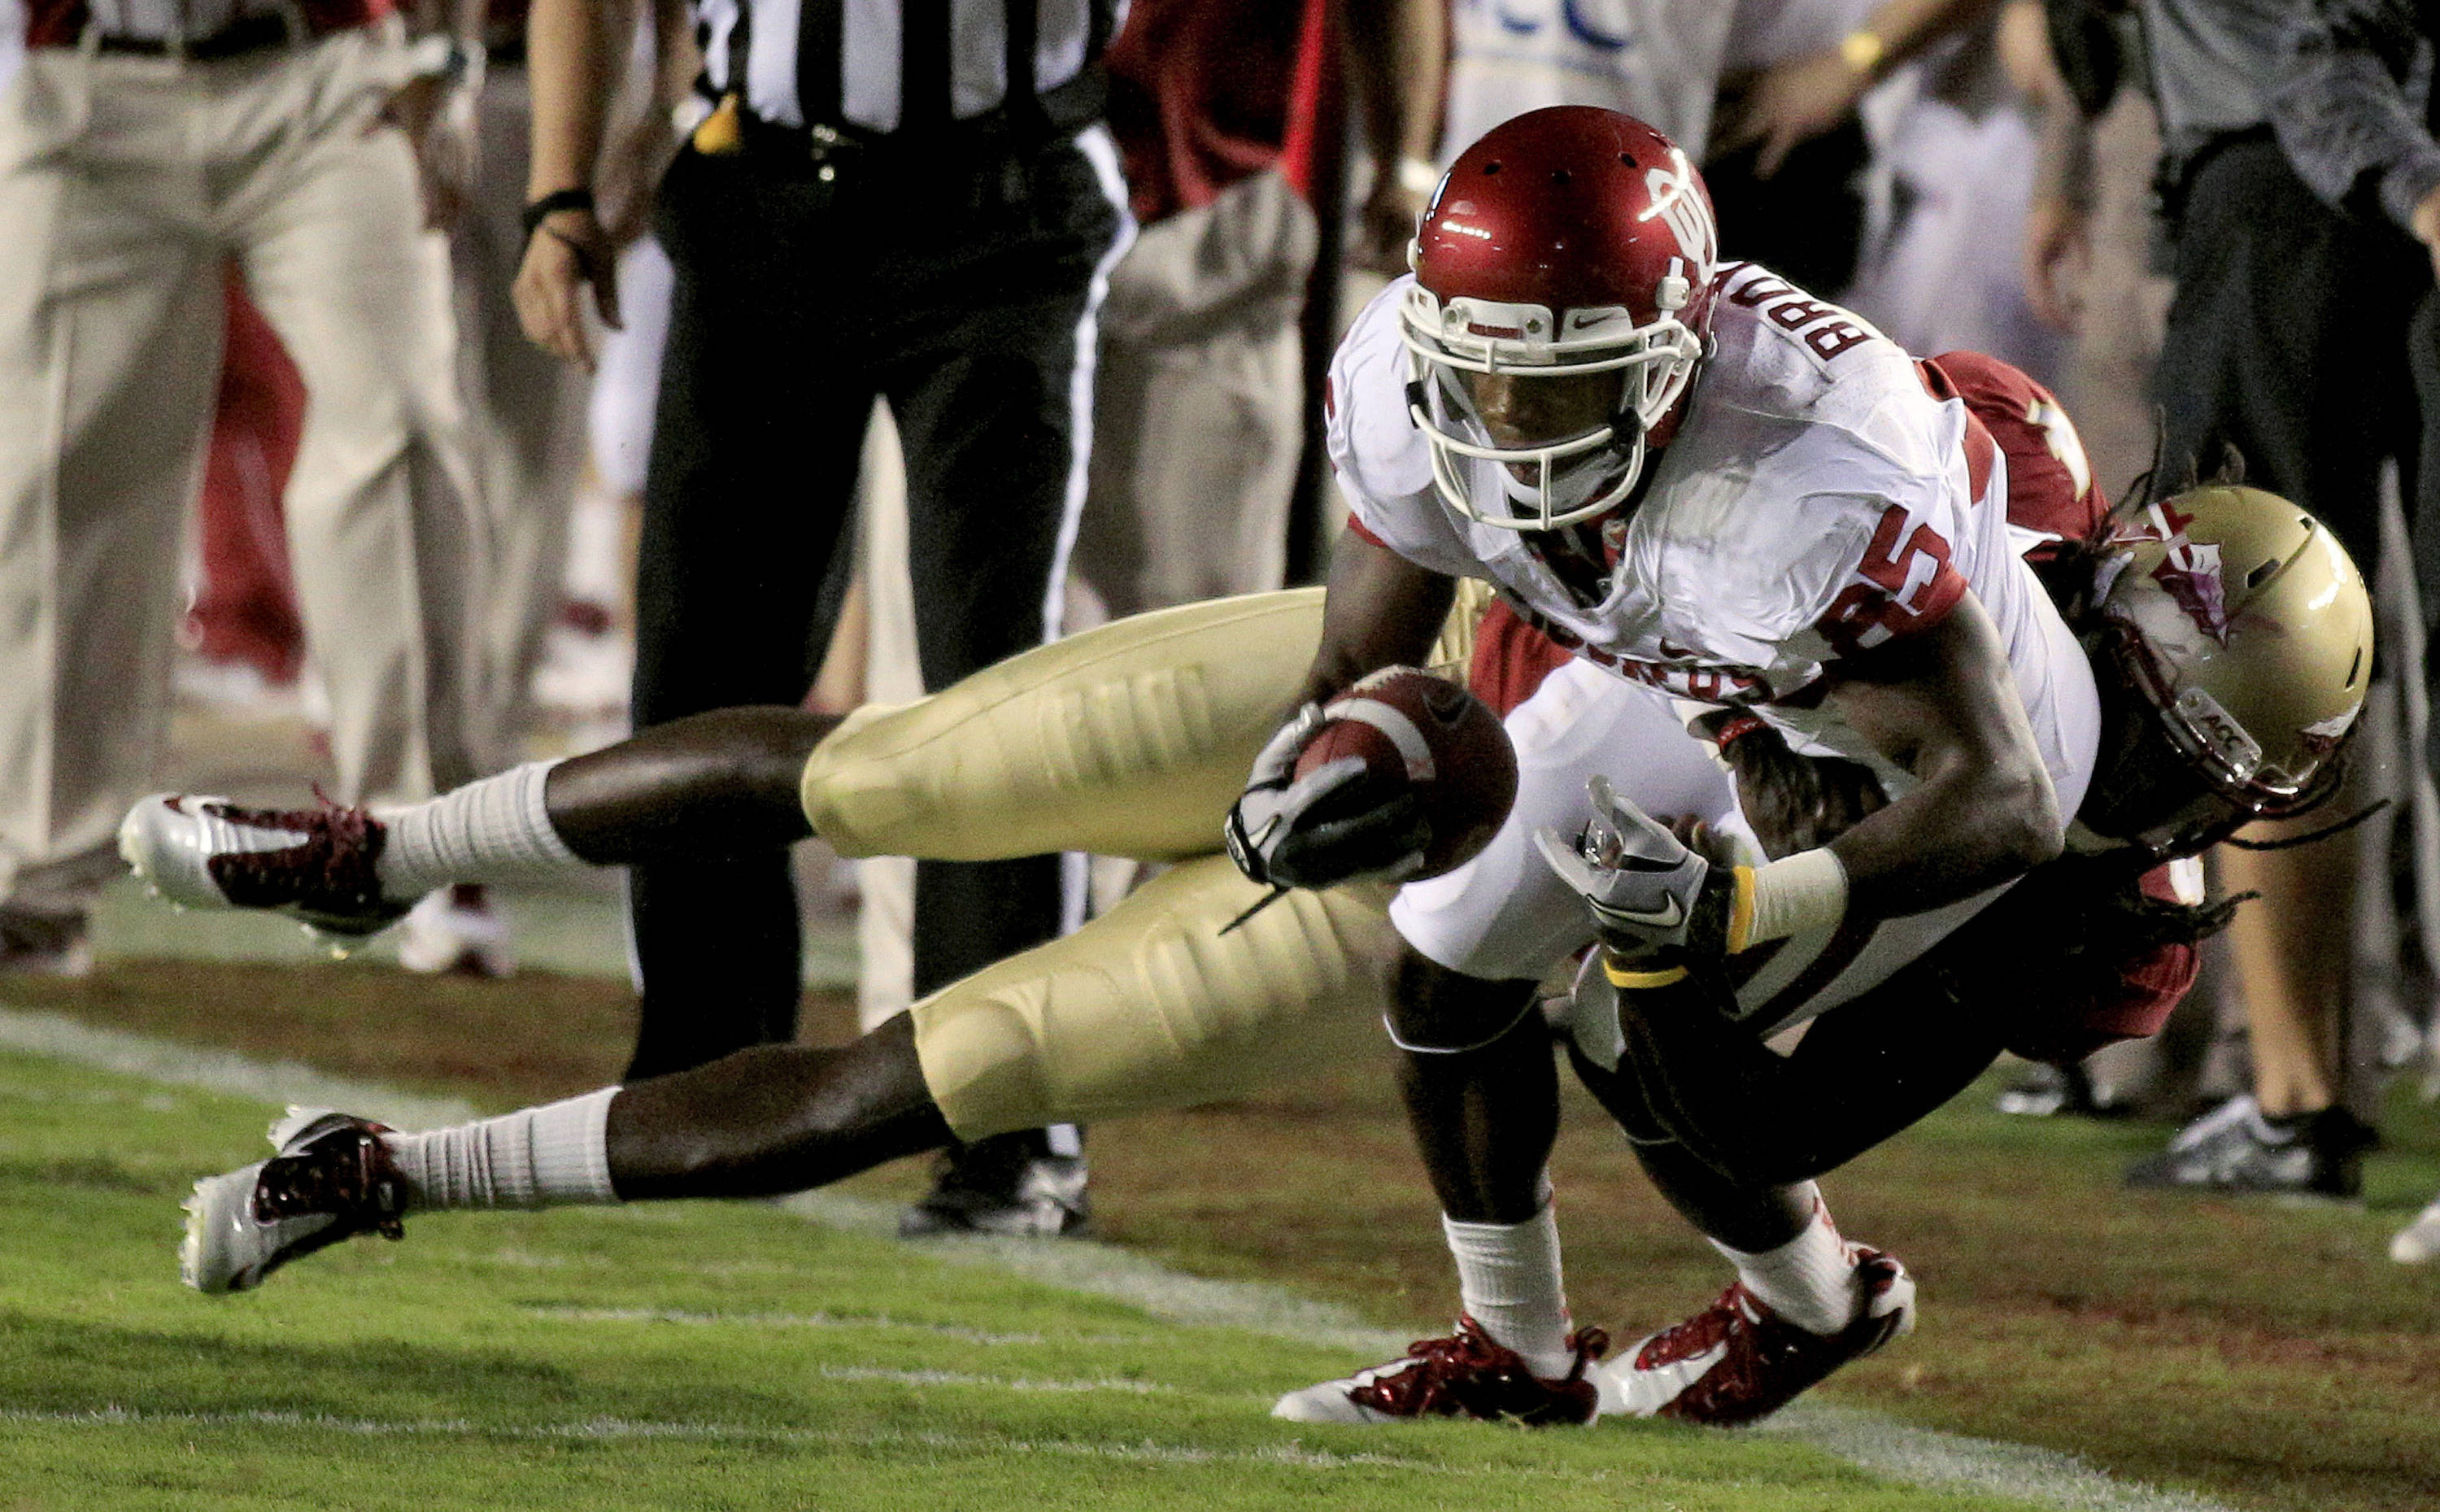 Oklahoma wide receiver Ryan Broyles (85) is taken down by Florida State safety Terrance Parks (4) after a first quarter reception. (AP Photo/Chris O'Meara)